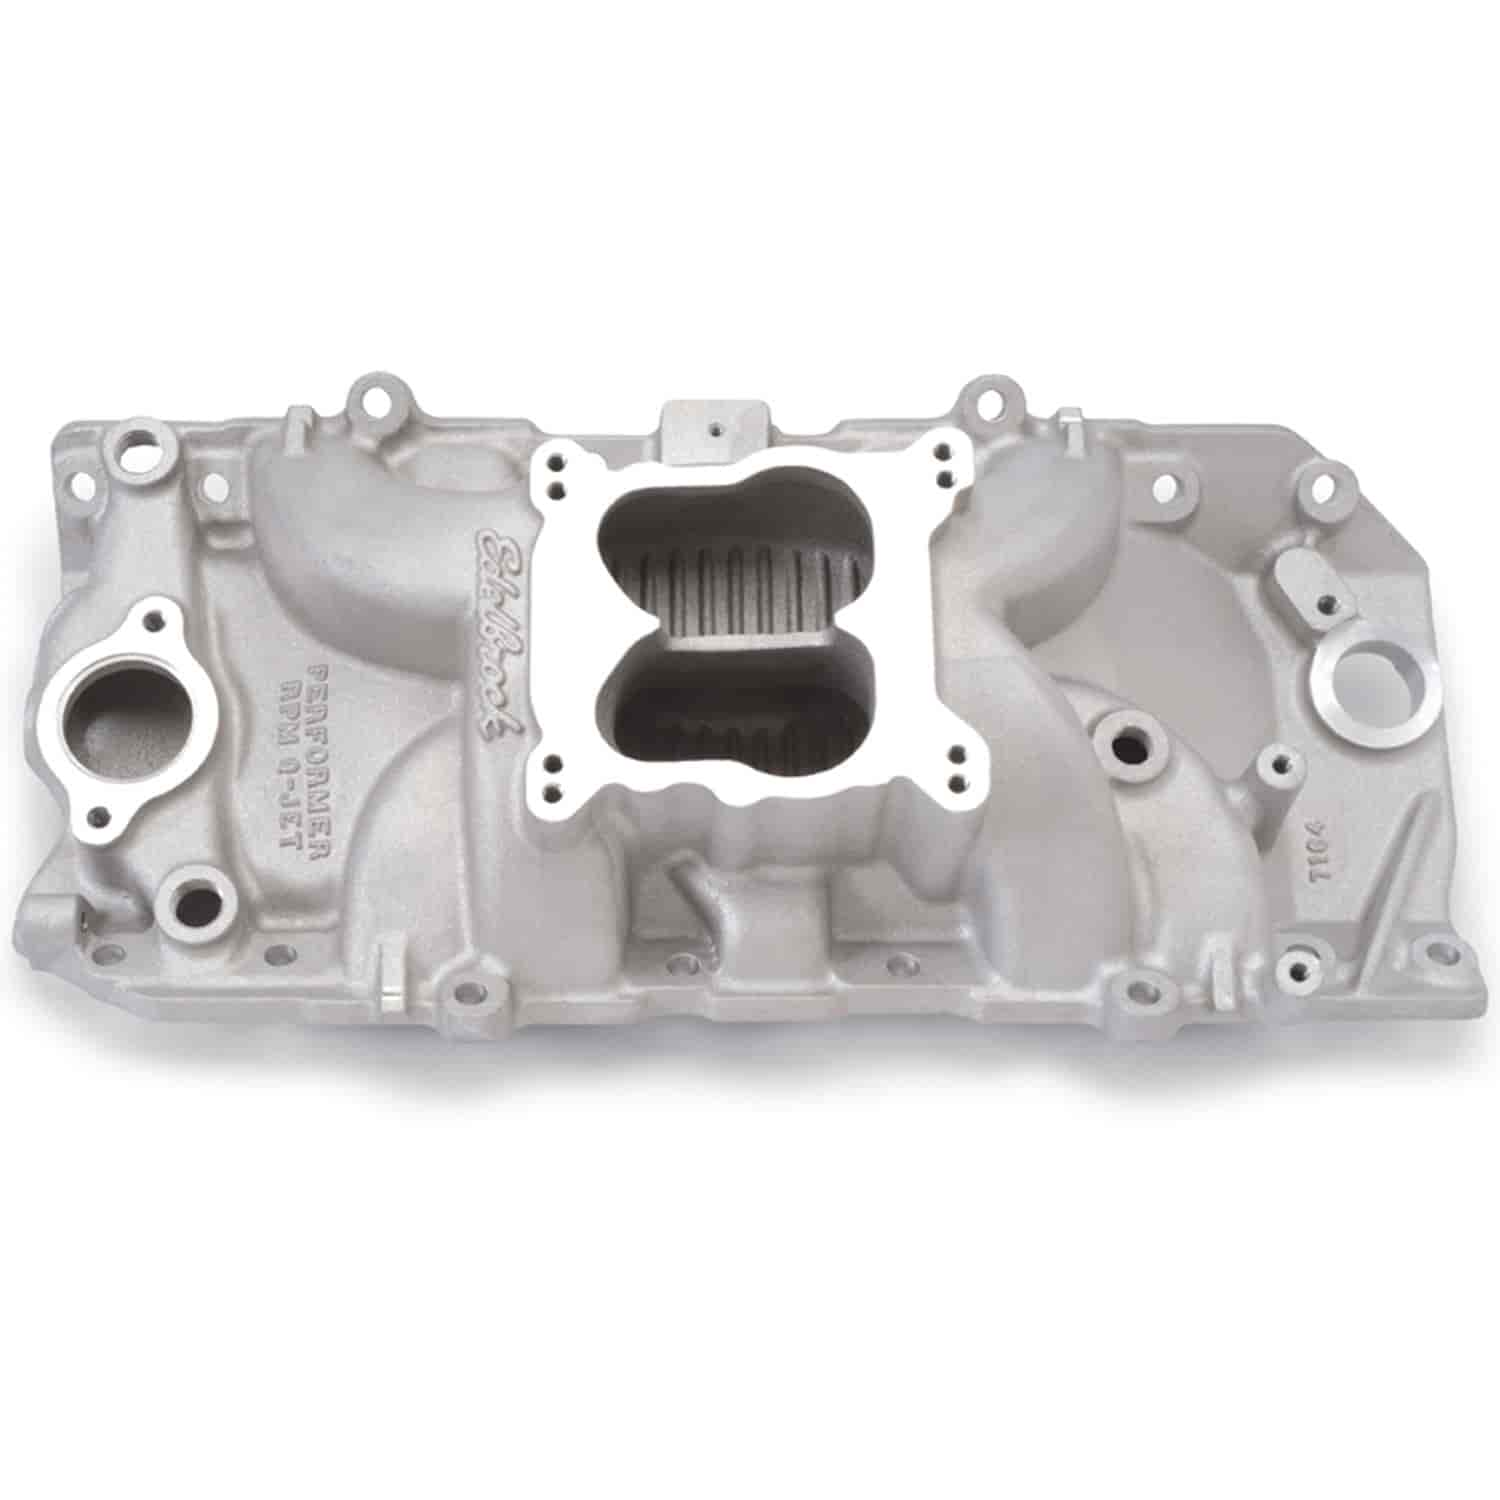 Edelbrock 7164 - Edelbrock Performer RPM Manifolds & Kits for Chevrolet